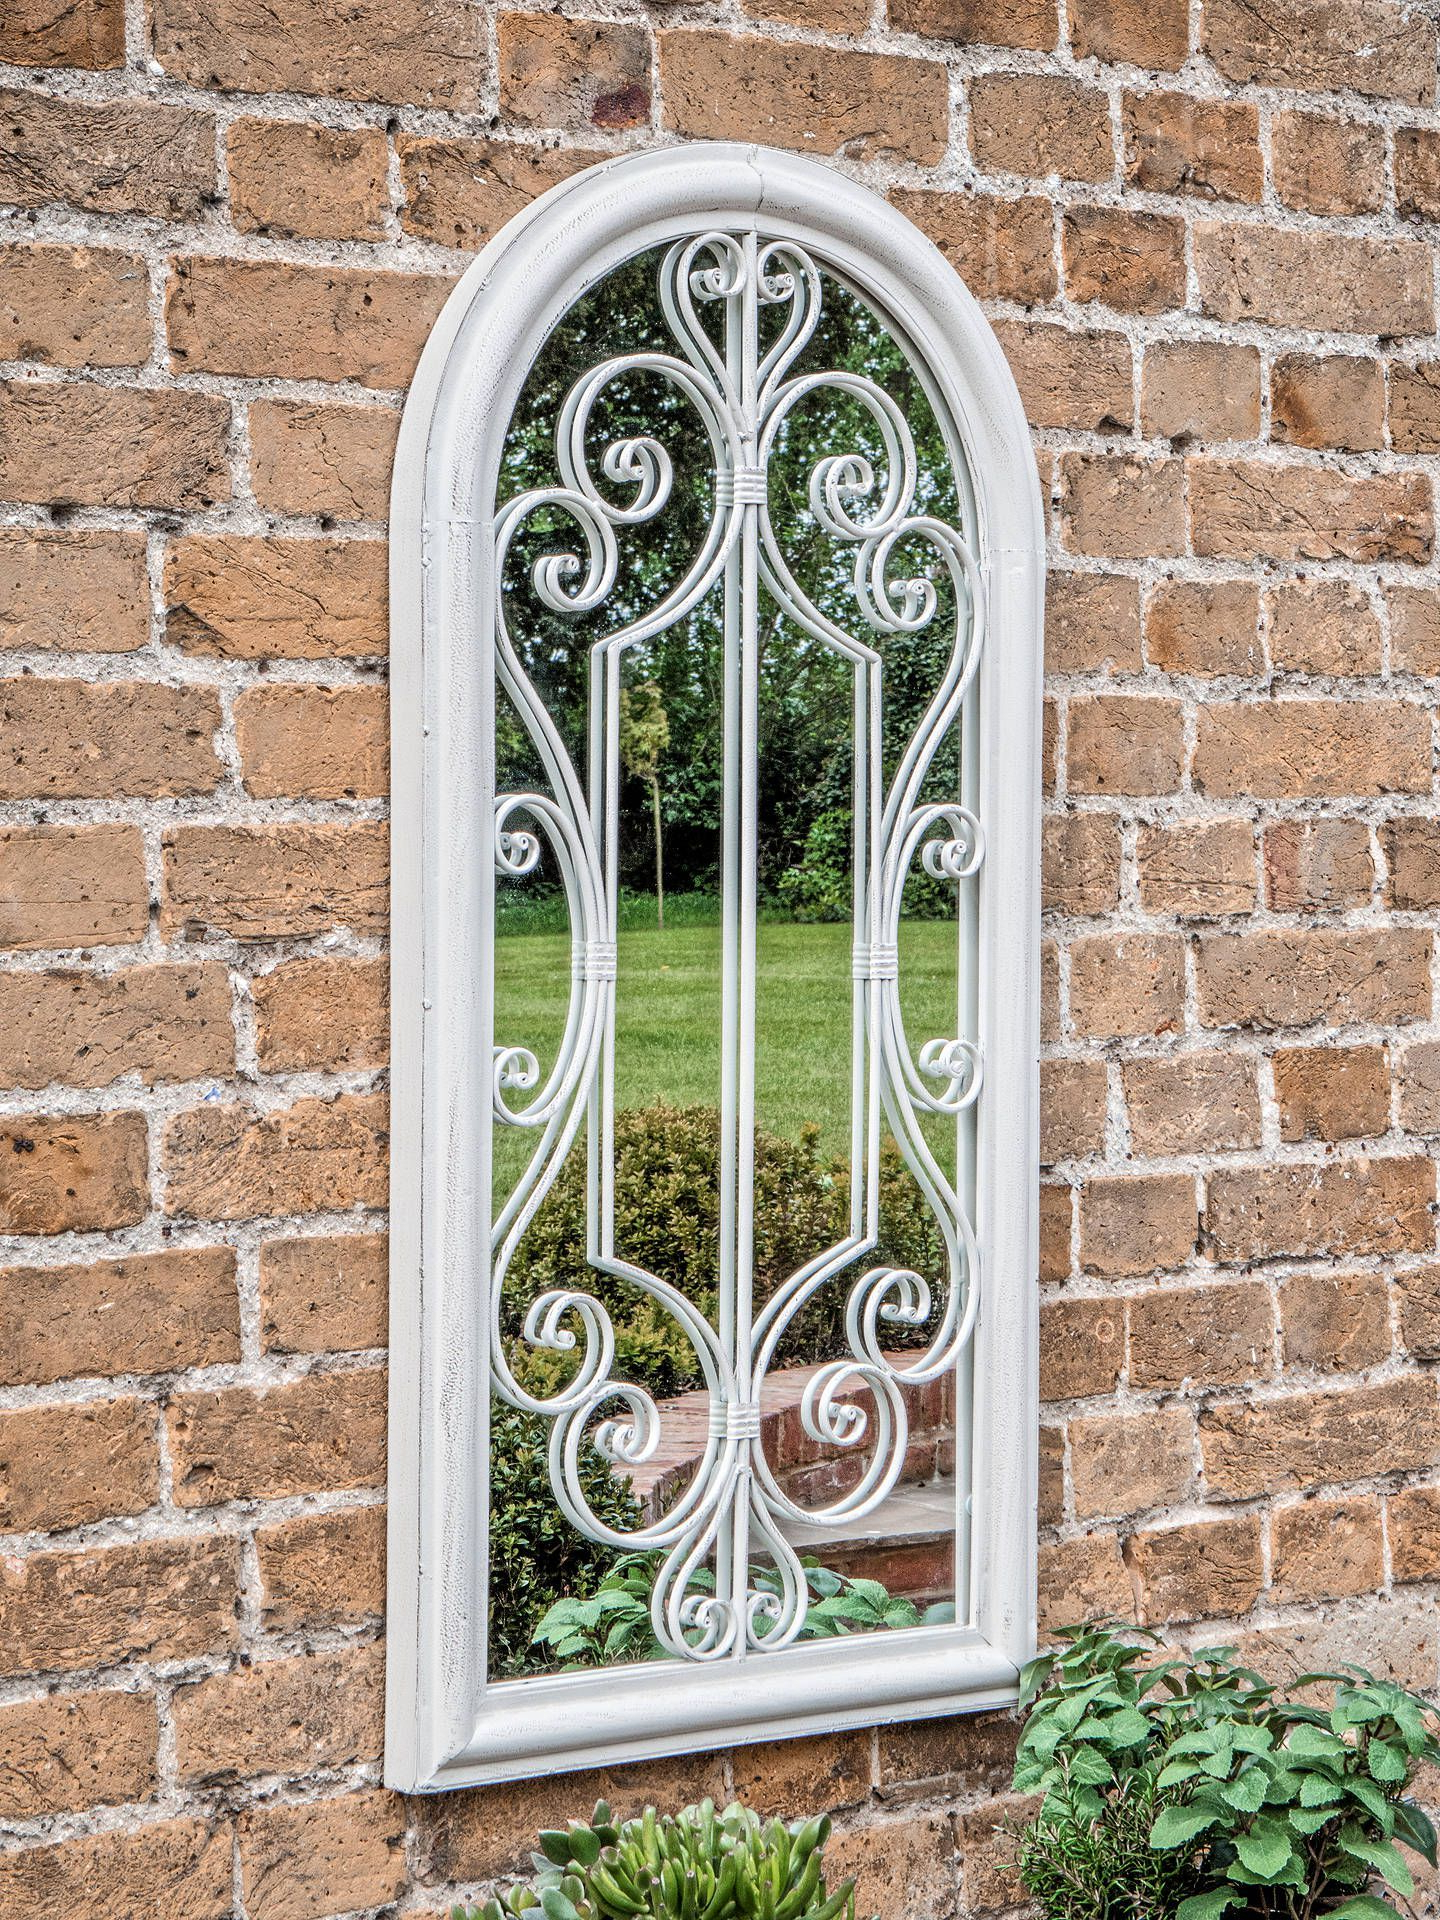 Outdoor Garden Wall Mirrors Within Well Known Fleura Outdoor Garden Wall Ornate Arched Mirror,  (View 13 of 20)